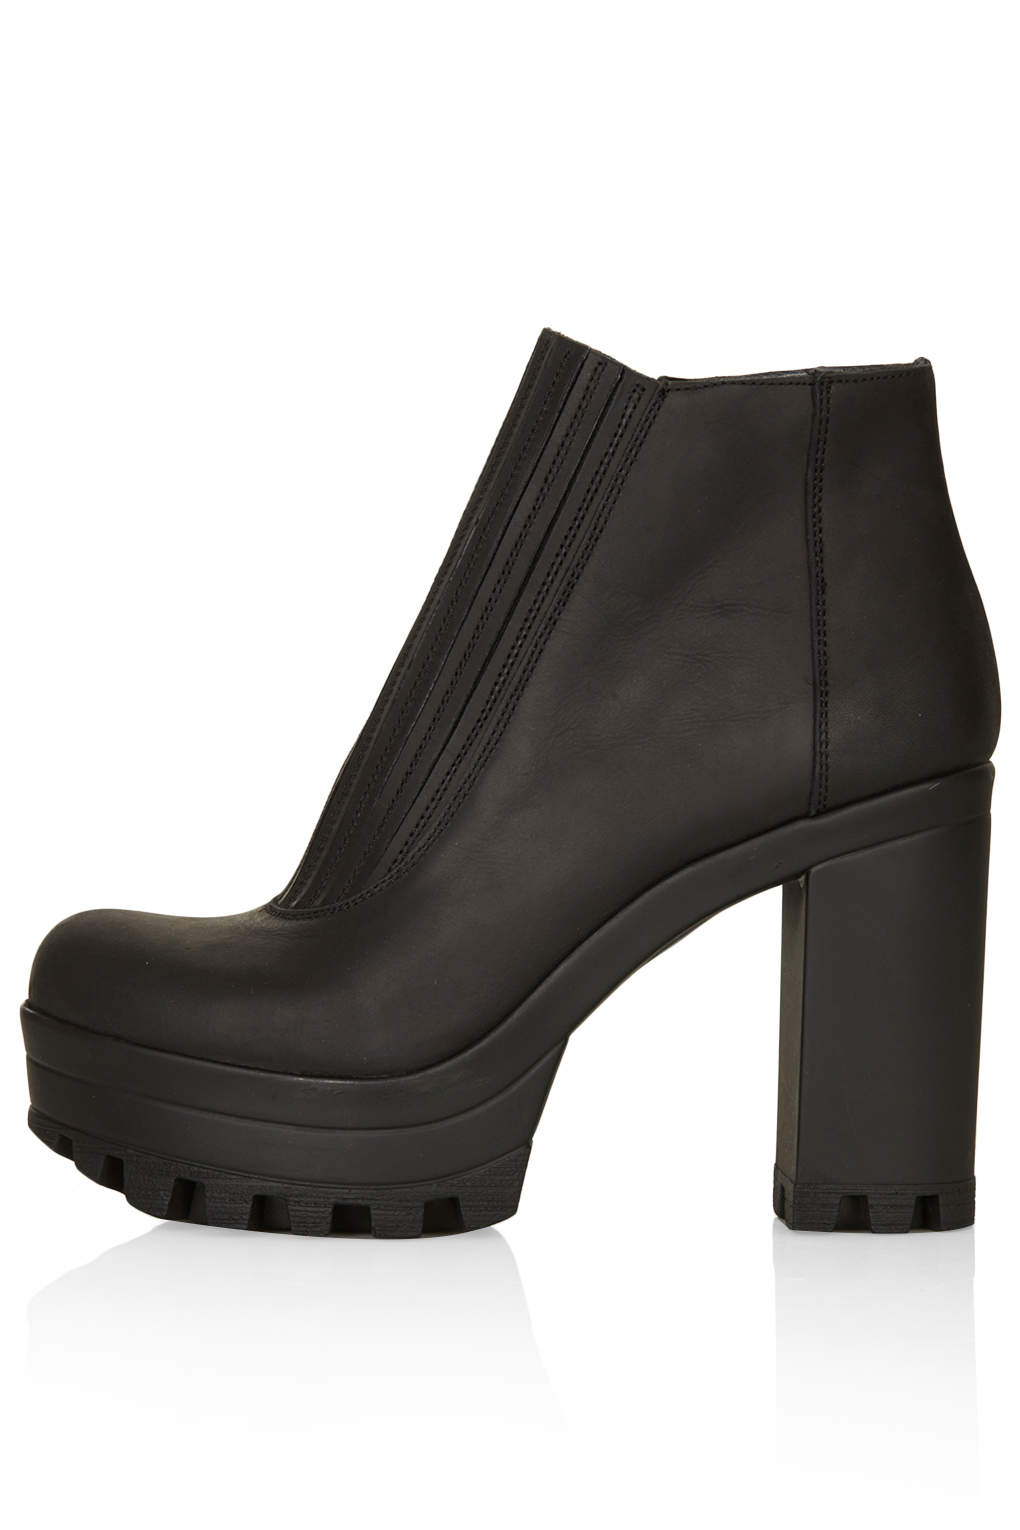 HAPPY Cleated Sole Boots - Boots - Shoes